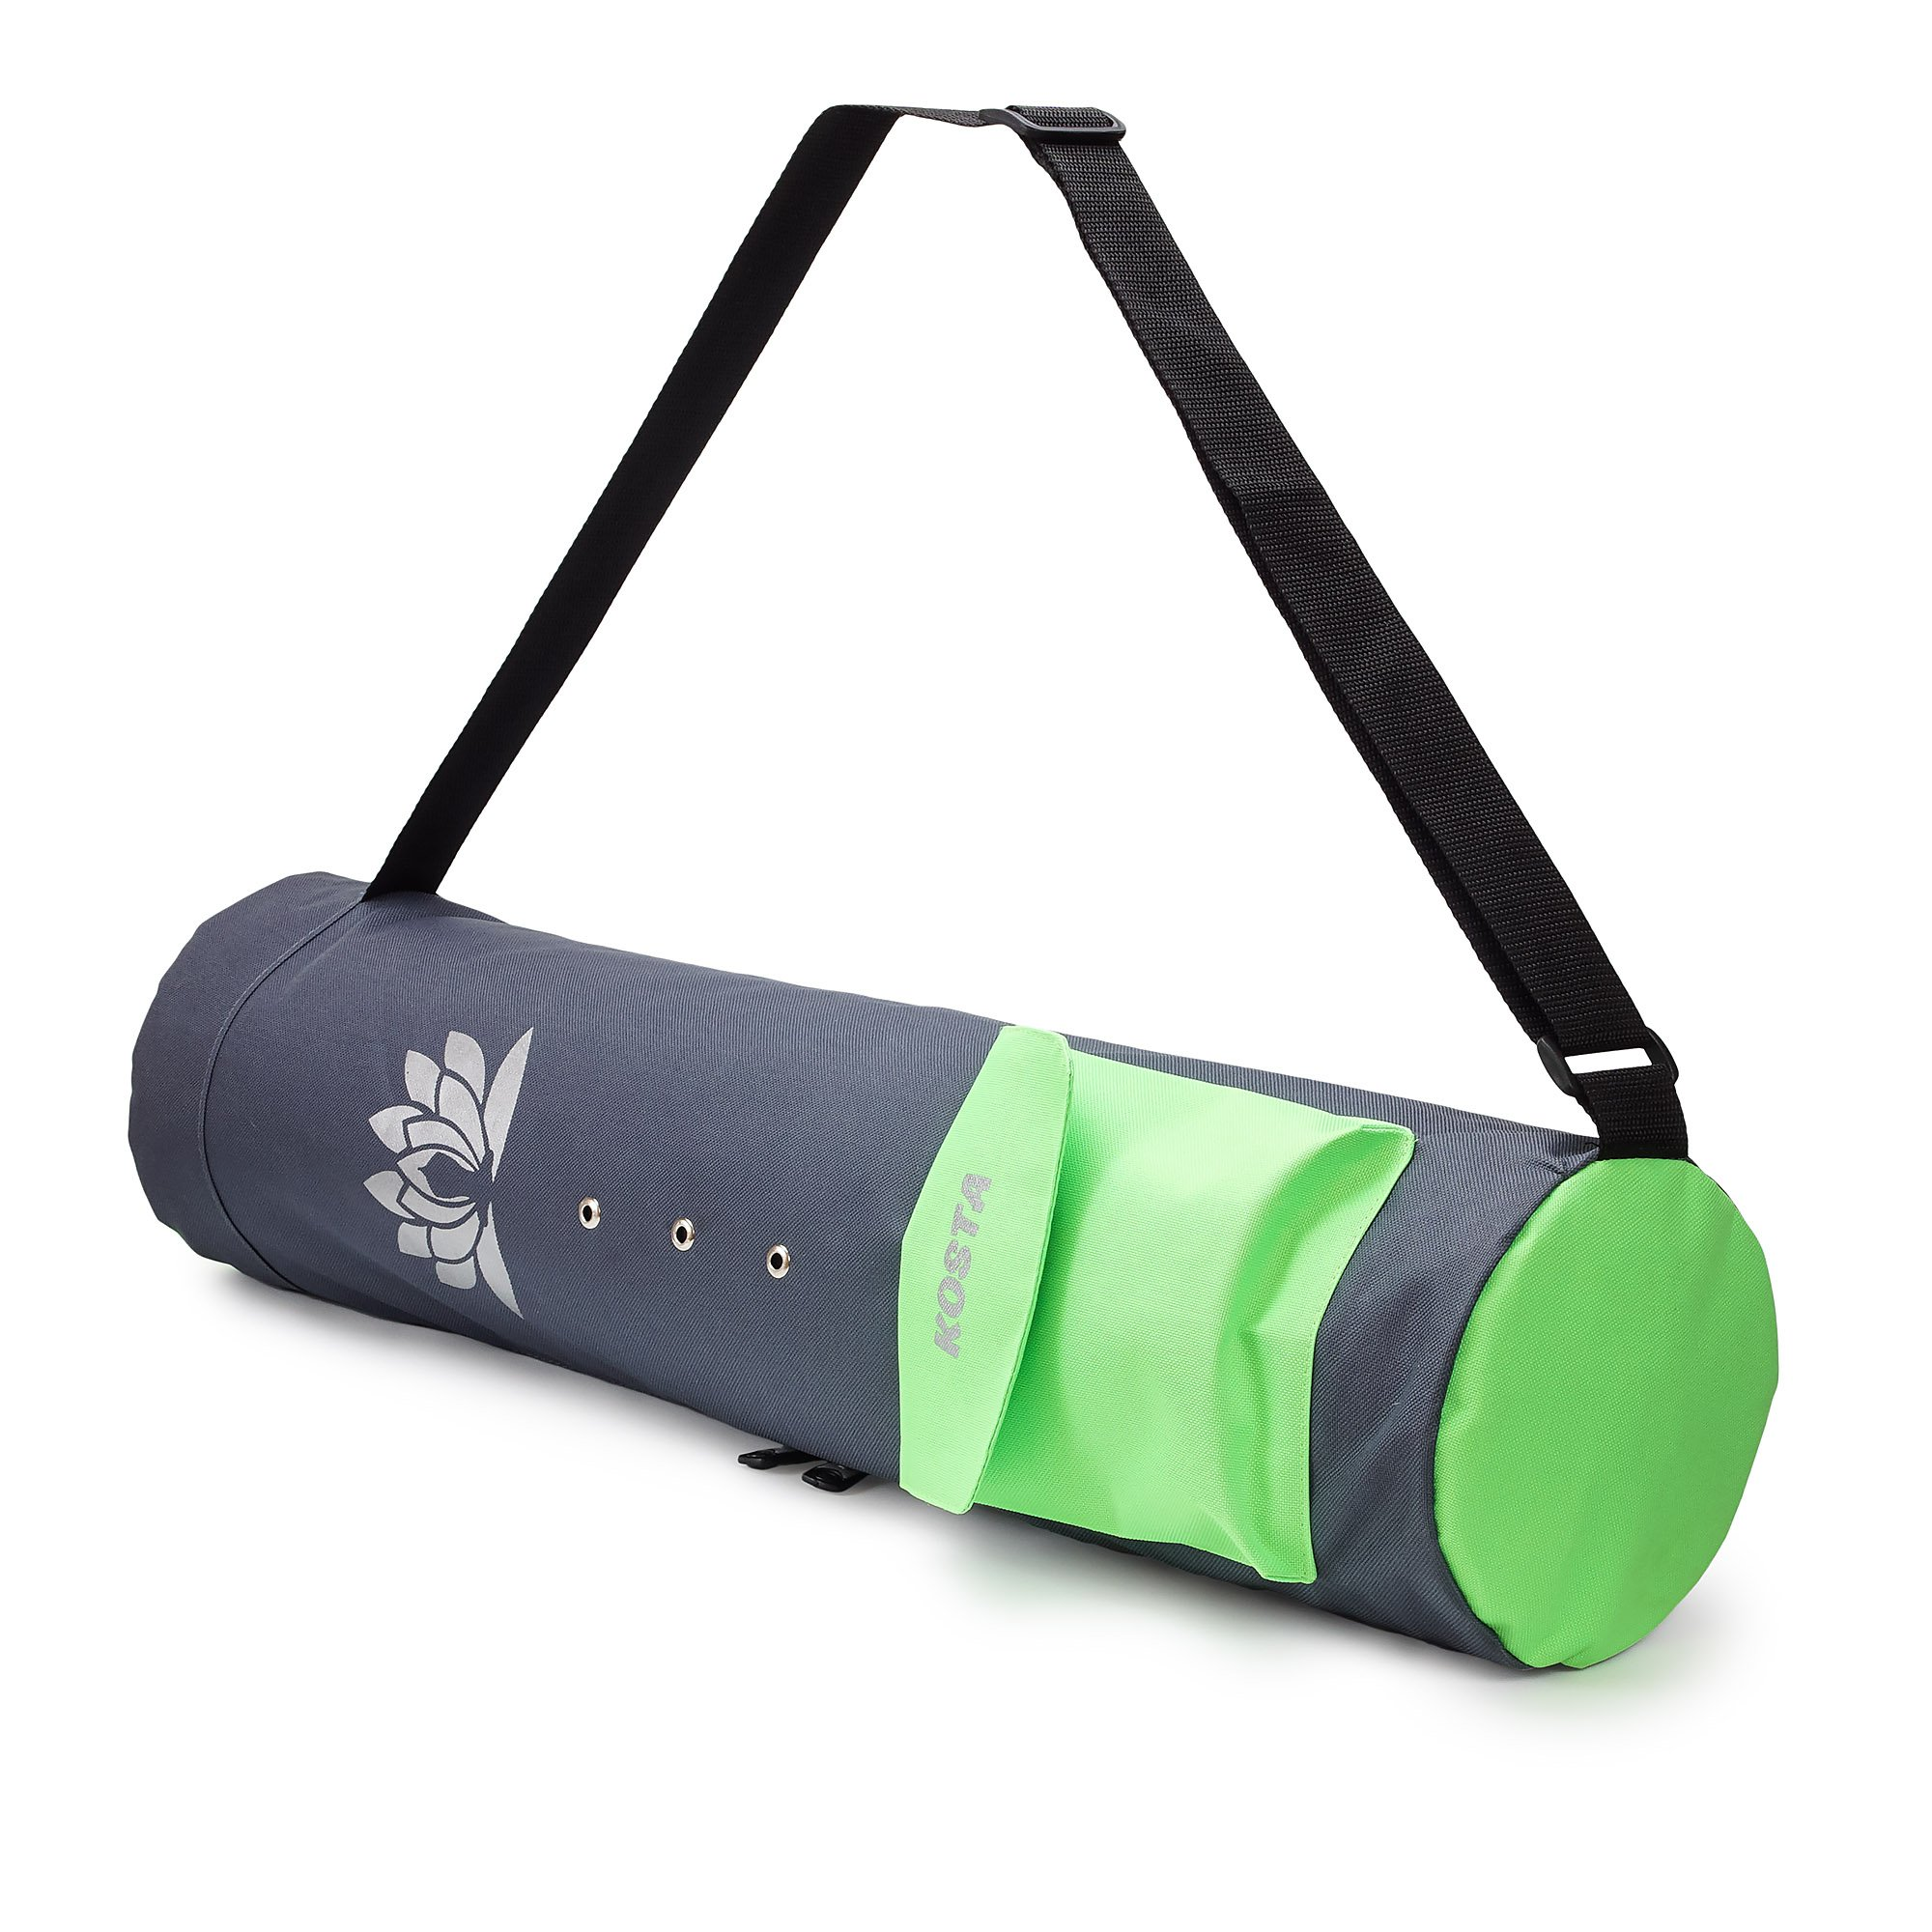 KOSTA Yoga Mat Bag Carrier for Men and Women - Yoga Bag Holder Stylish and Convenient for Any Size Mat Grey and Green by KOSTA